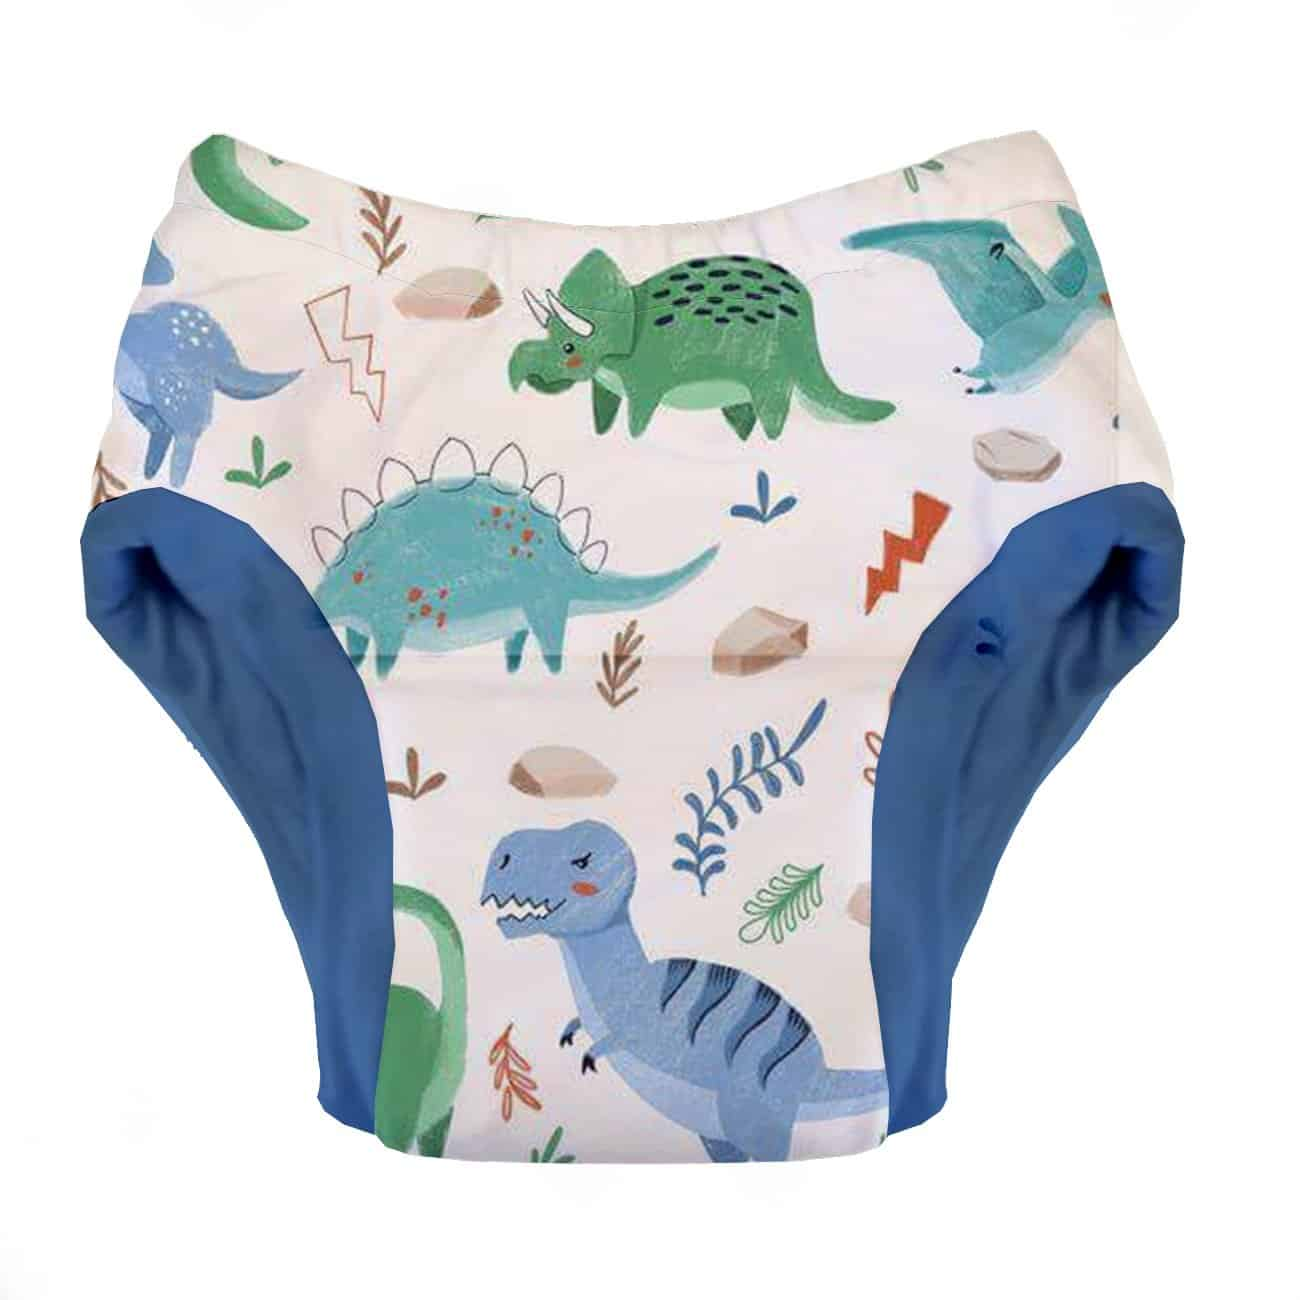 Thirsties Reusable Cloth Potty Training Pant